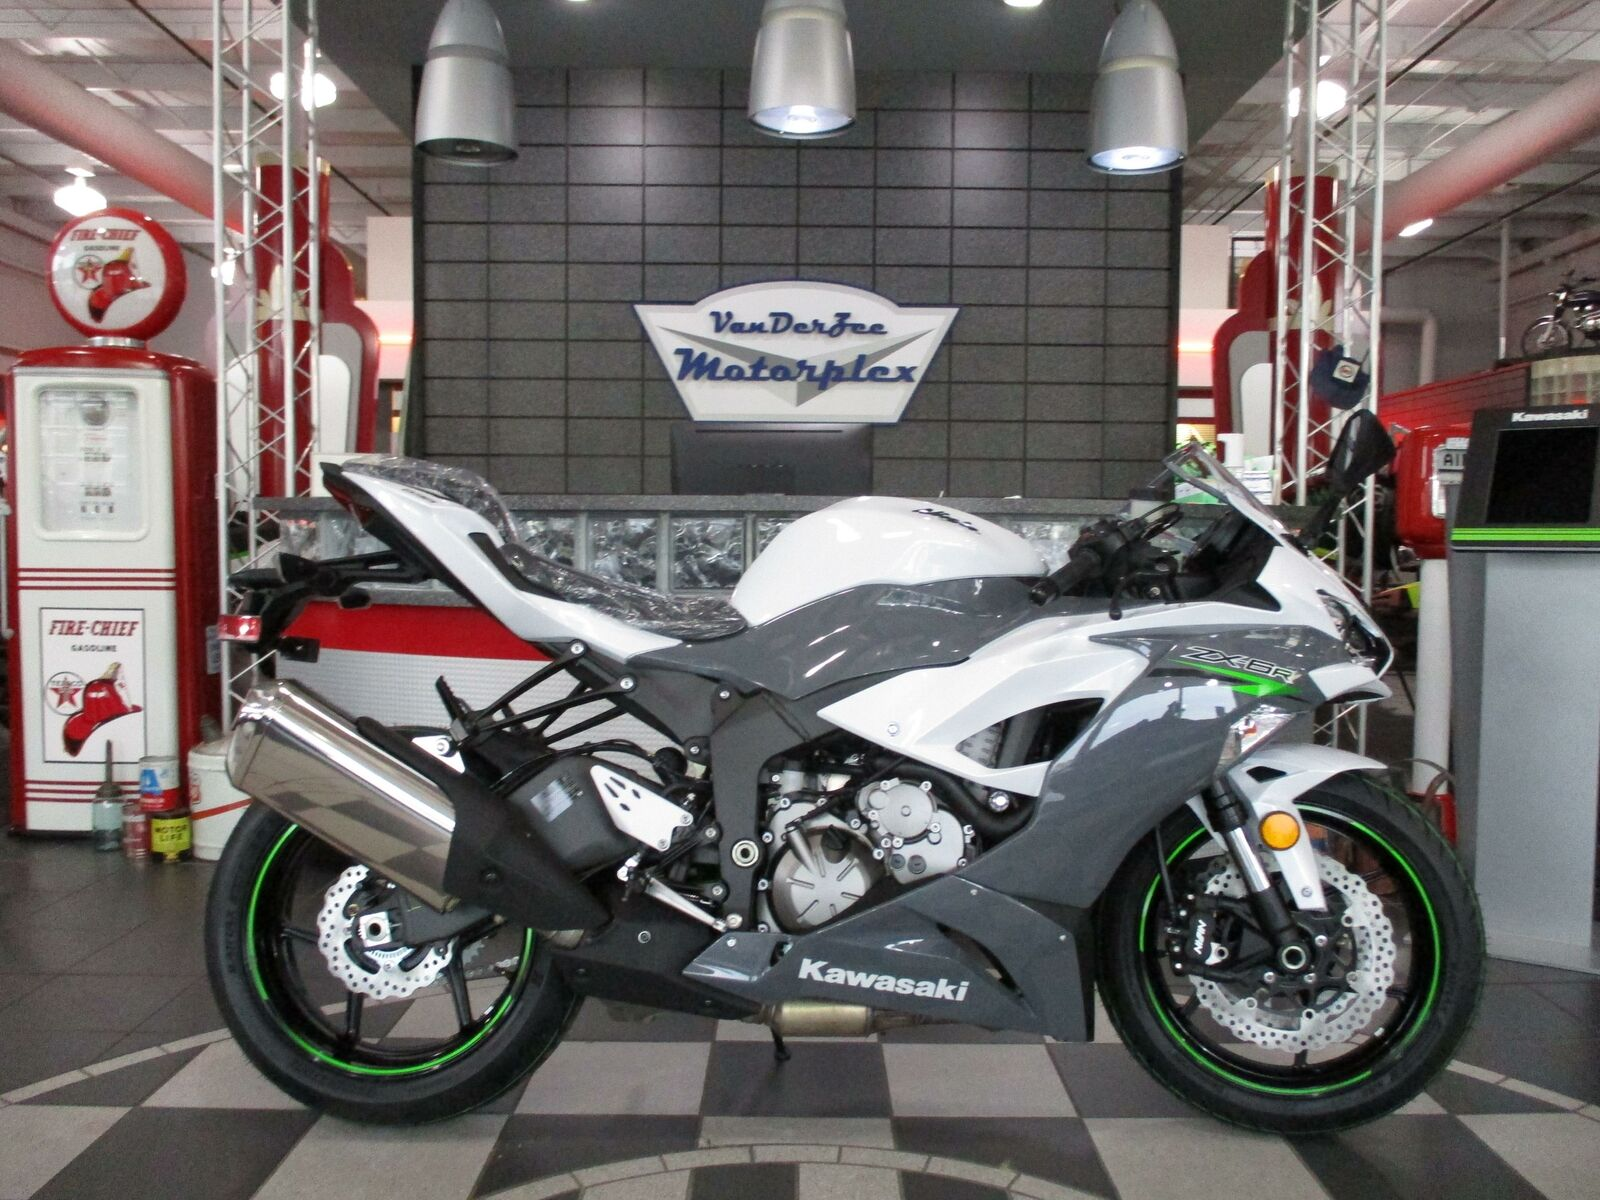 2021 Kawasaki ZX6R * JUST ARRIVED * CALL NOW * 3.99% LOCAL 60 Mo FIN * HURRY